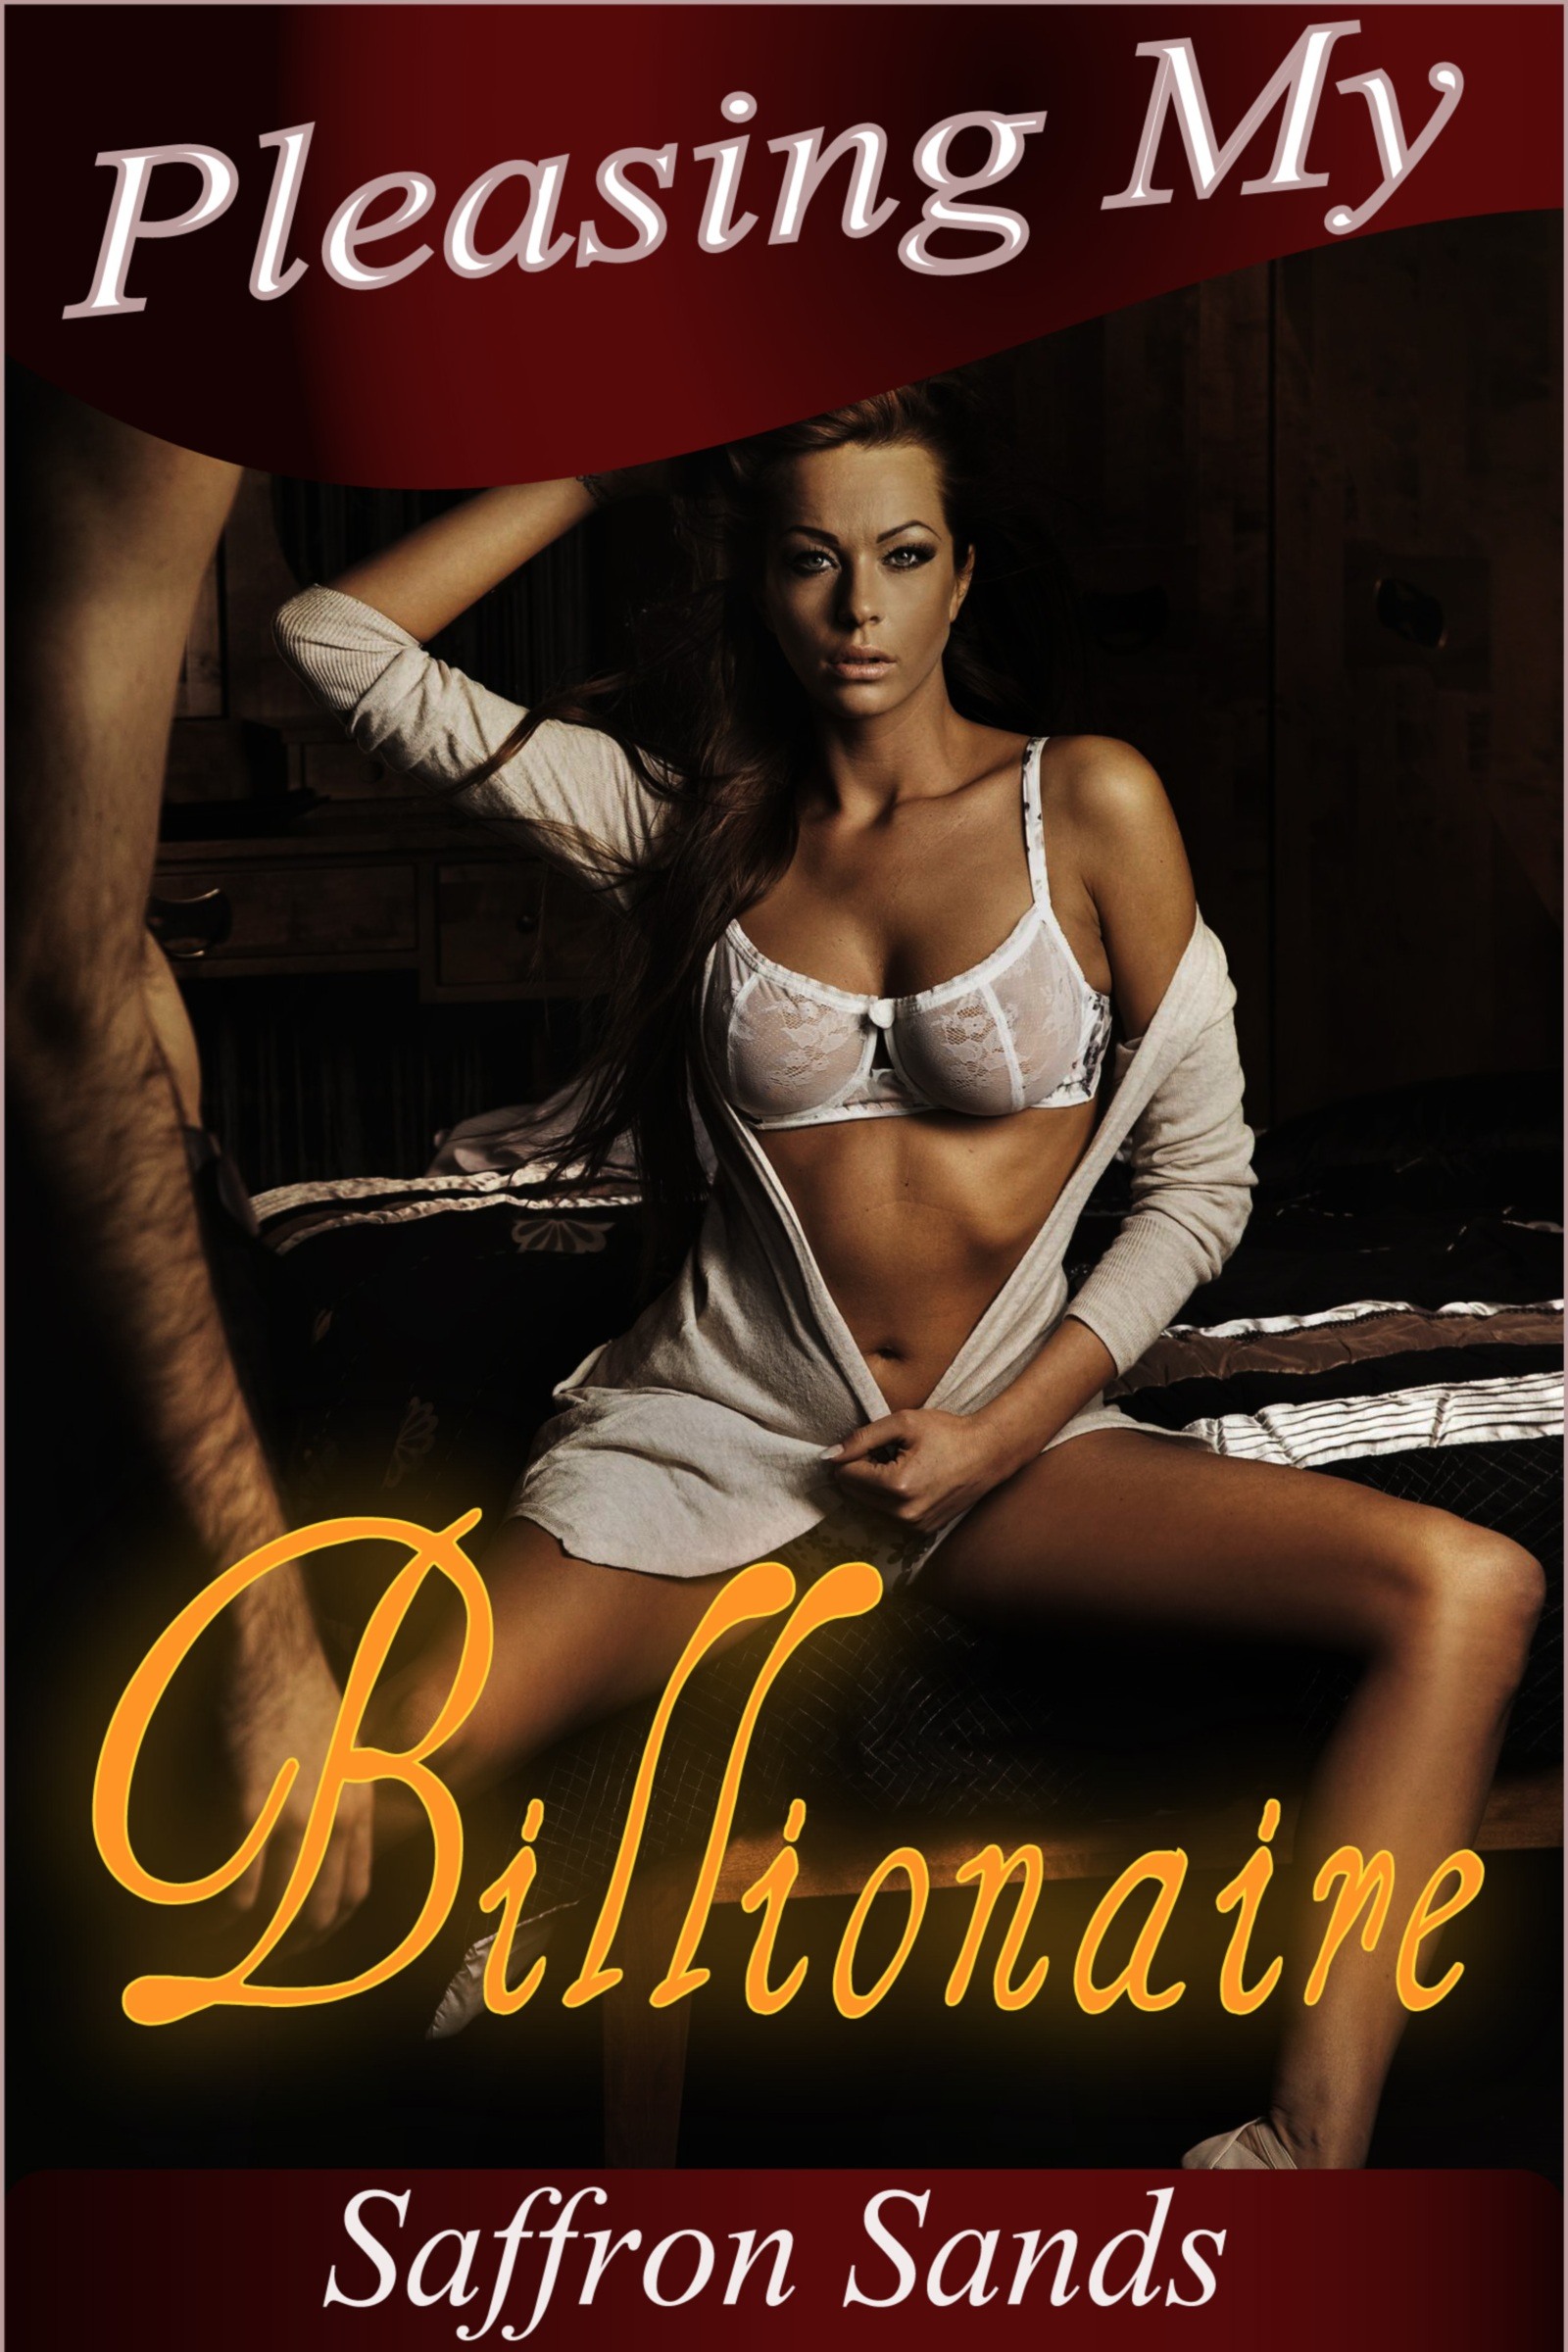 Pleasing My Billionaire (A Romantic BDSM Erotic Short Story)